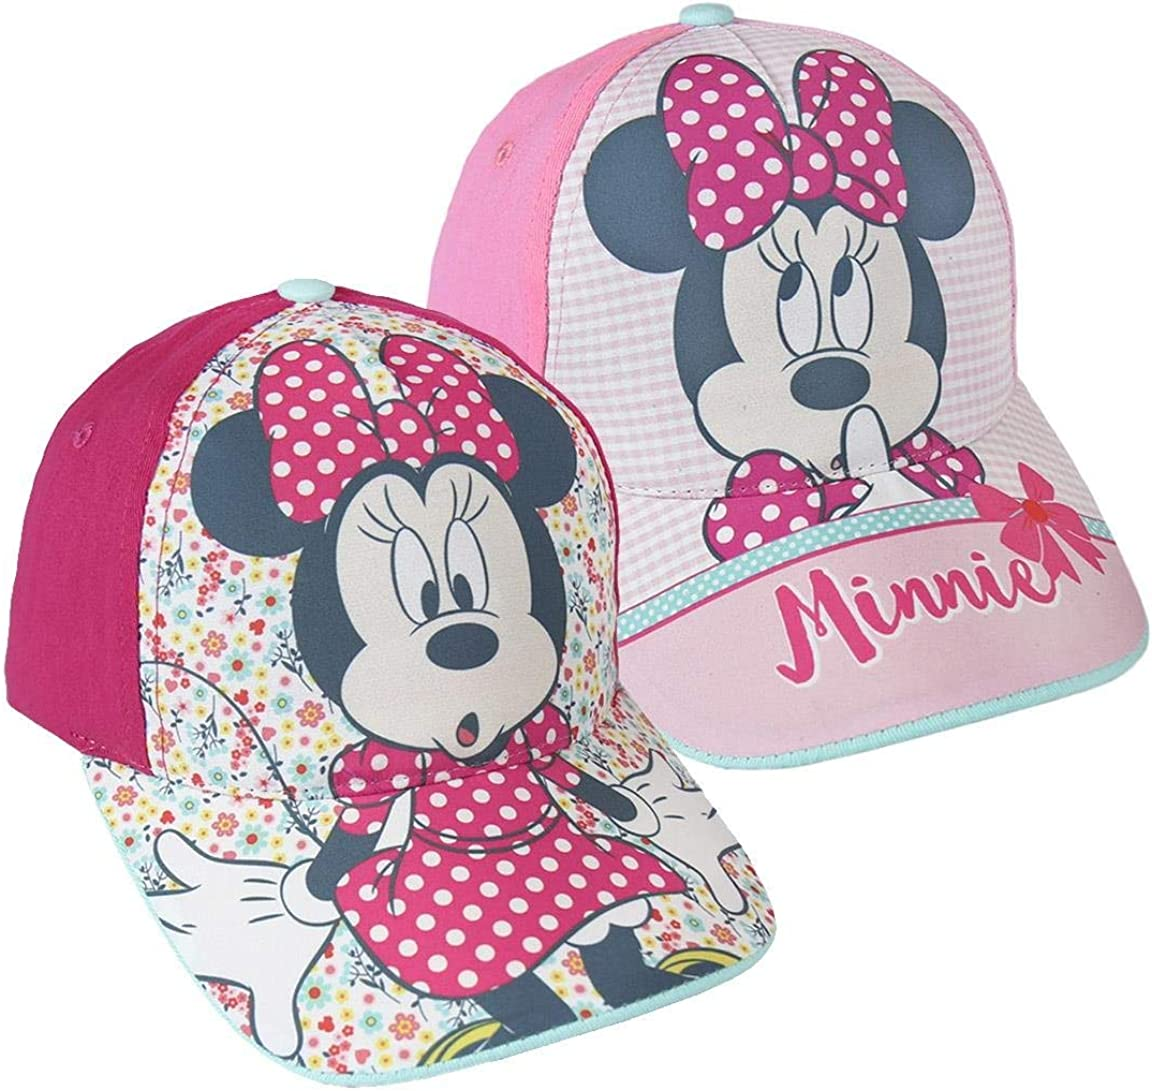 Disney Baby Boys S0717159 Hat Pink One Size